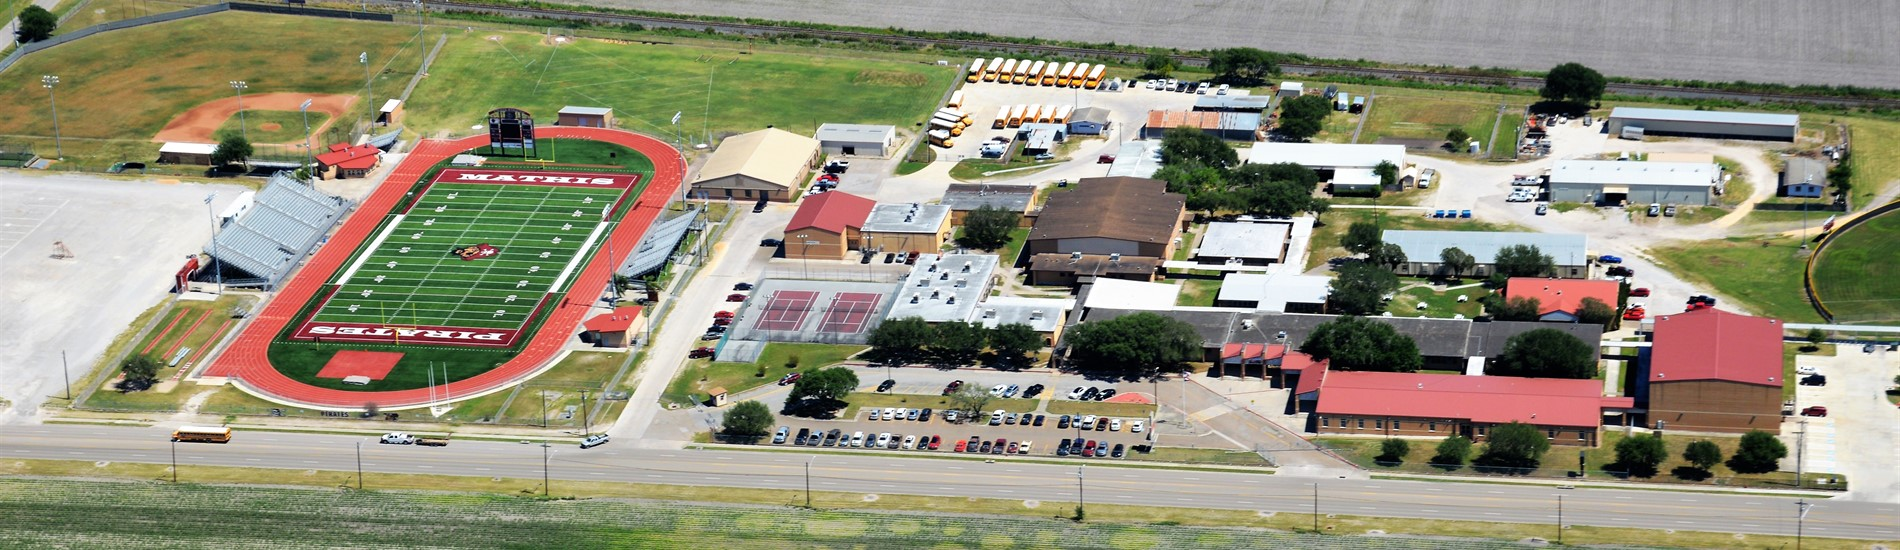 Mathis High School Aerial Photo